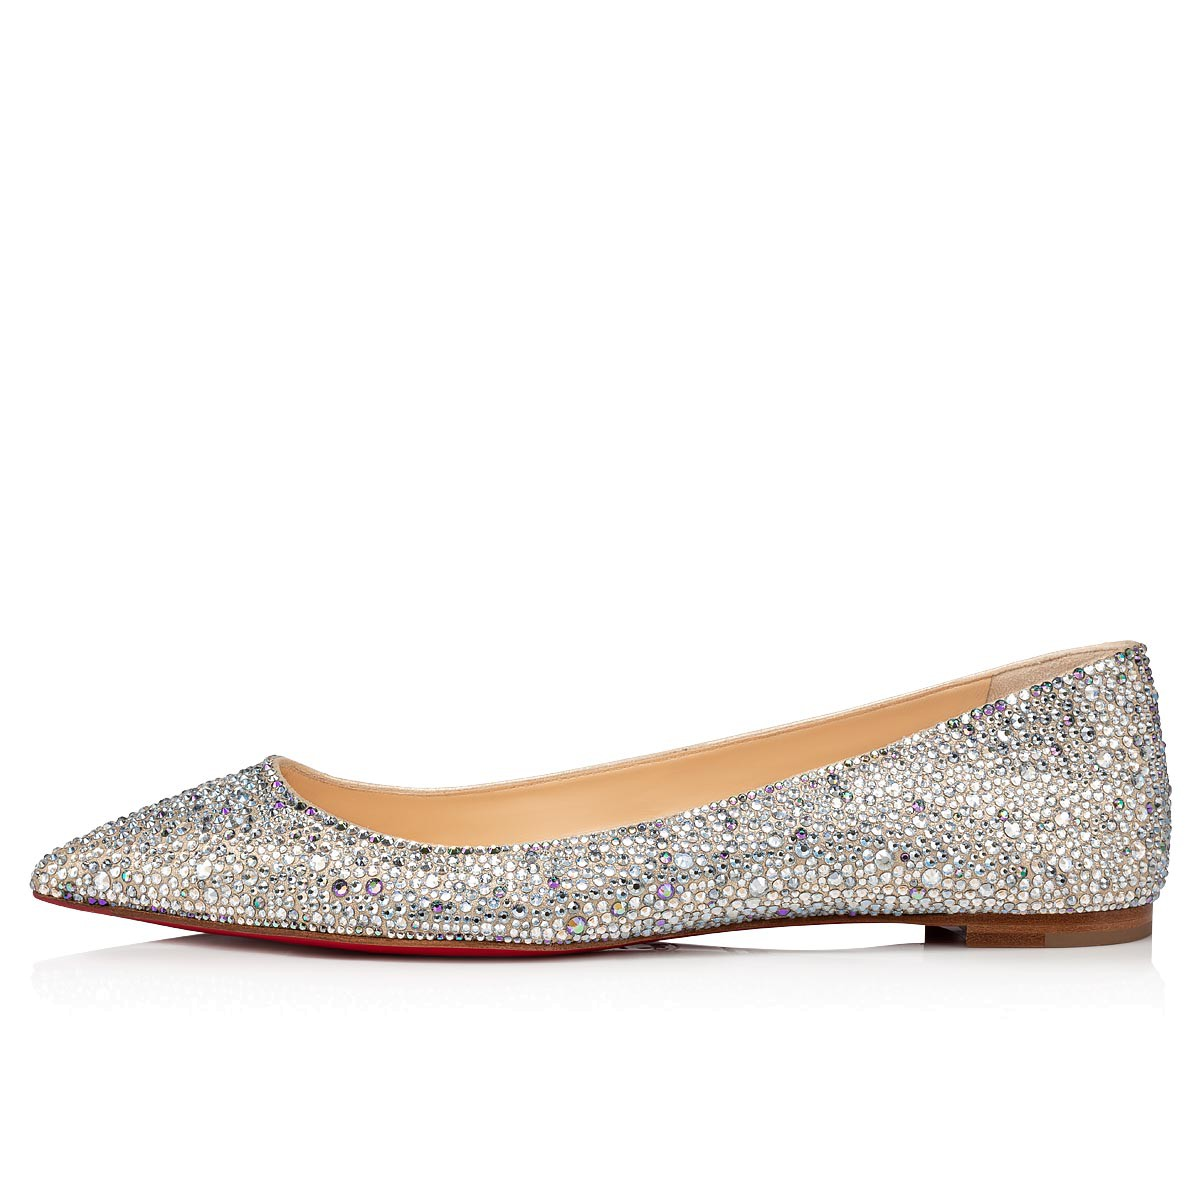 Women Shoes - Ballalla - Christian Louboutin